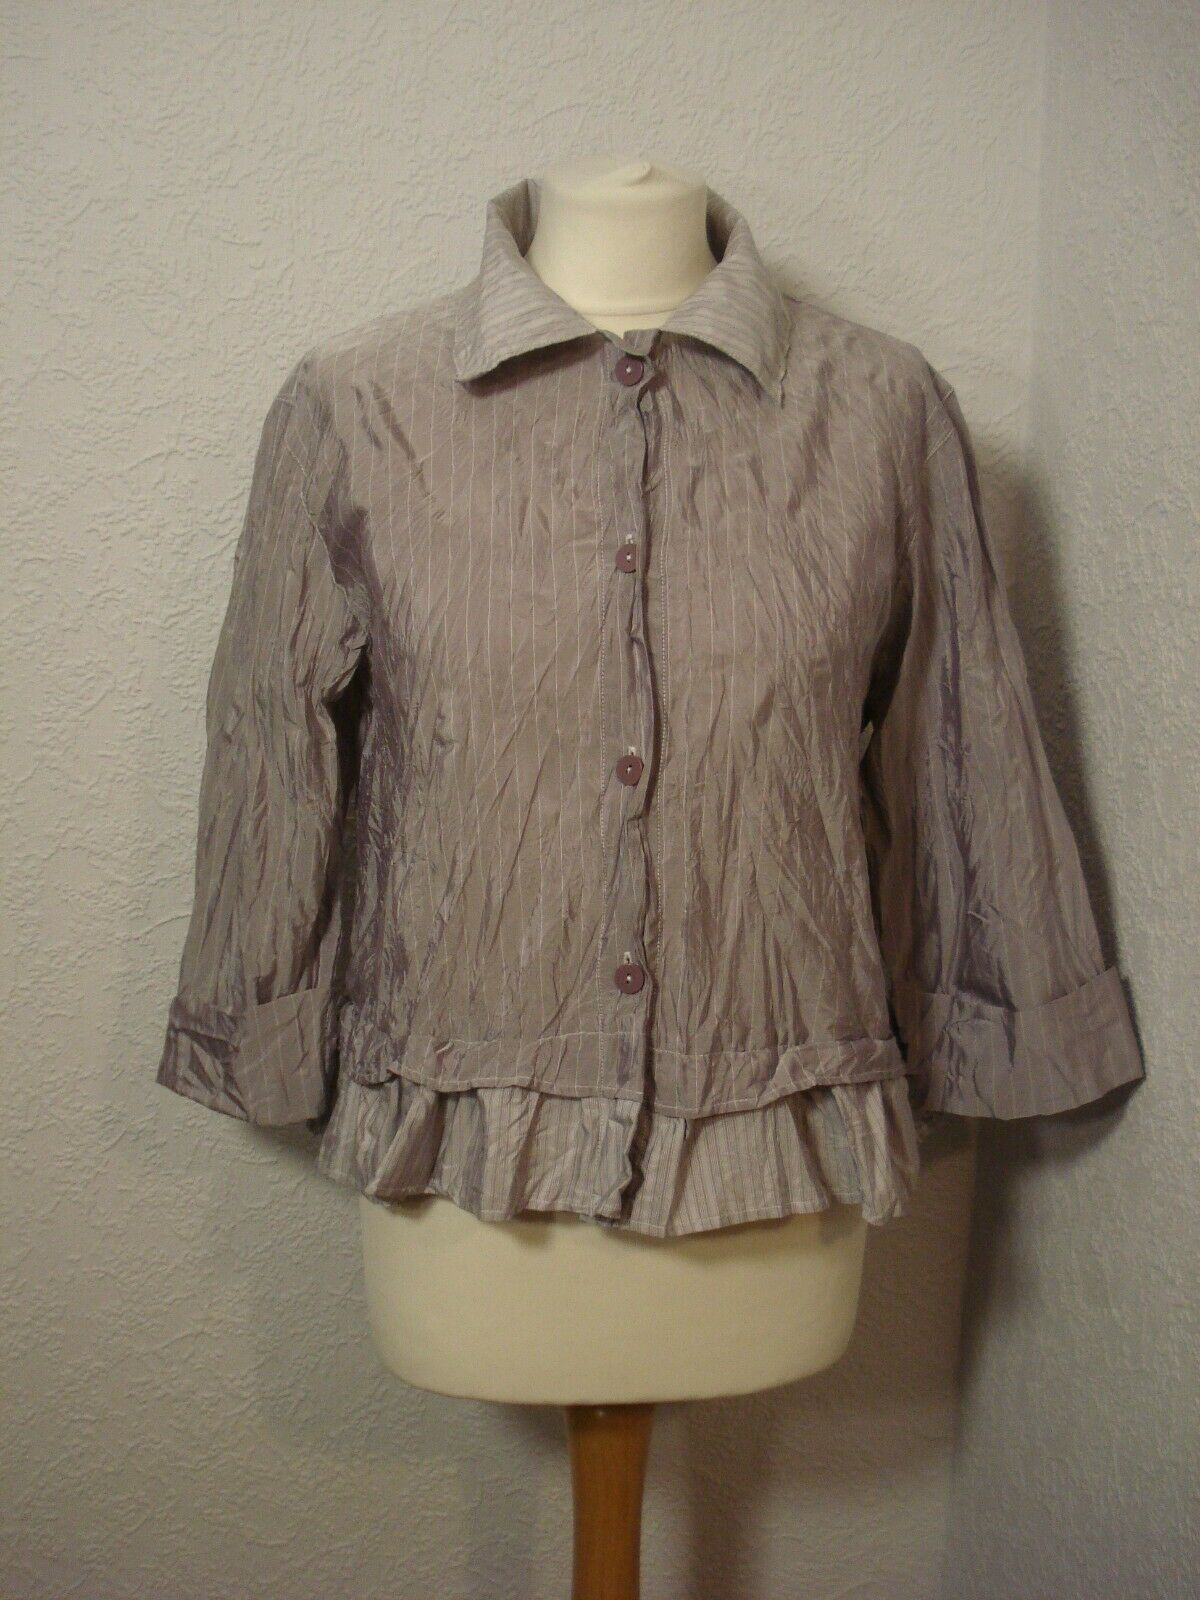 BNWOT Lauren Vidal mauve purplec purple striped ruffle hem top S (12-14)